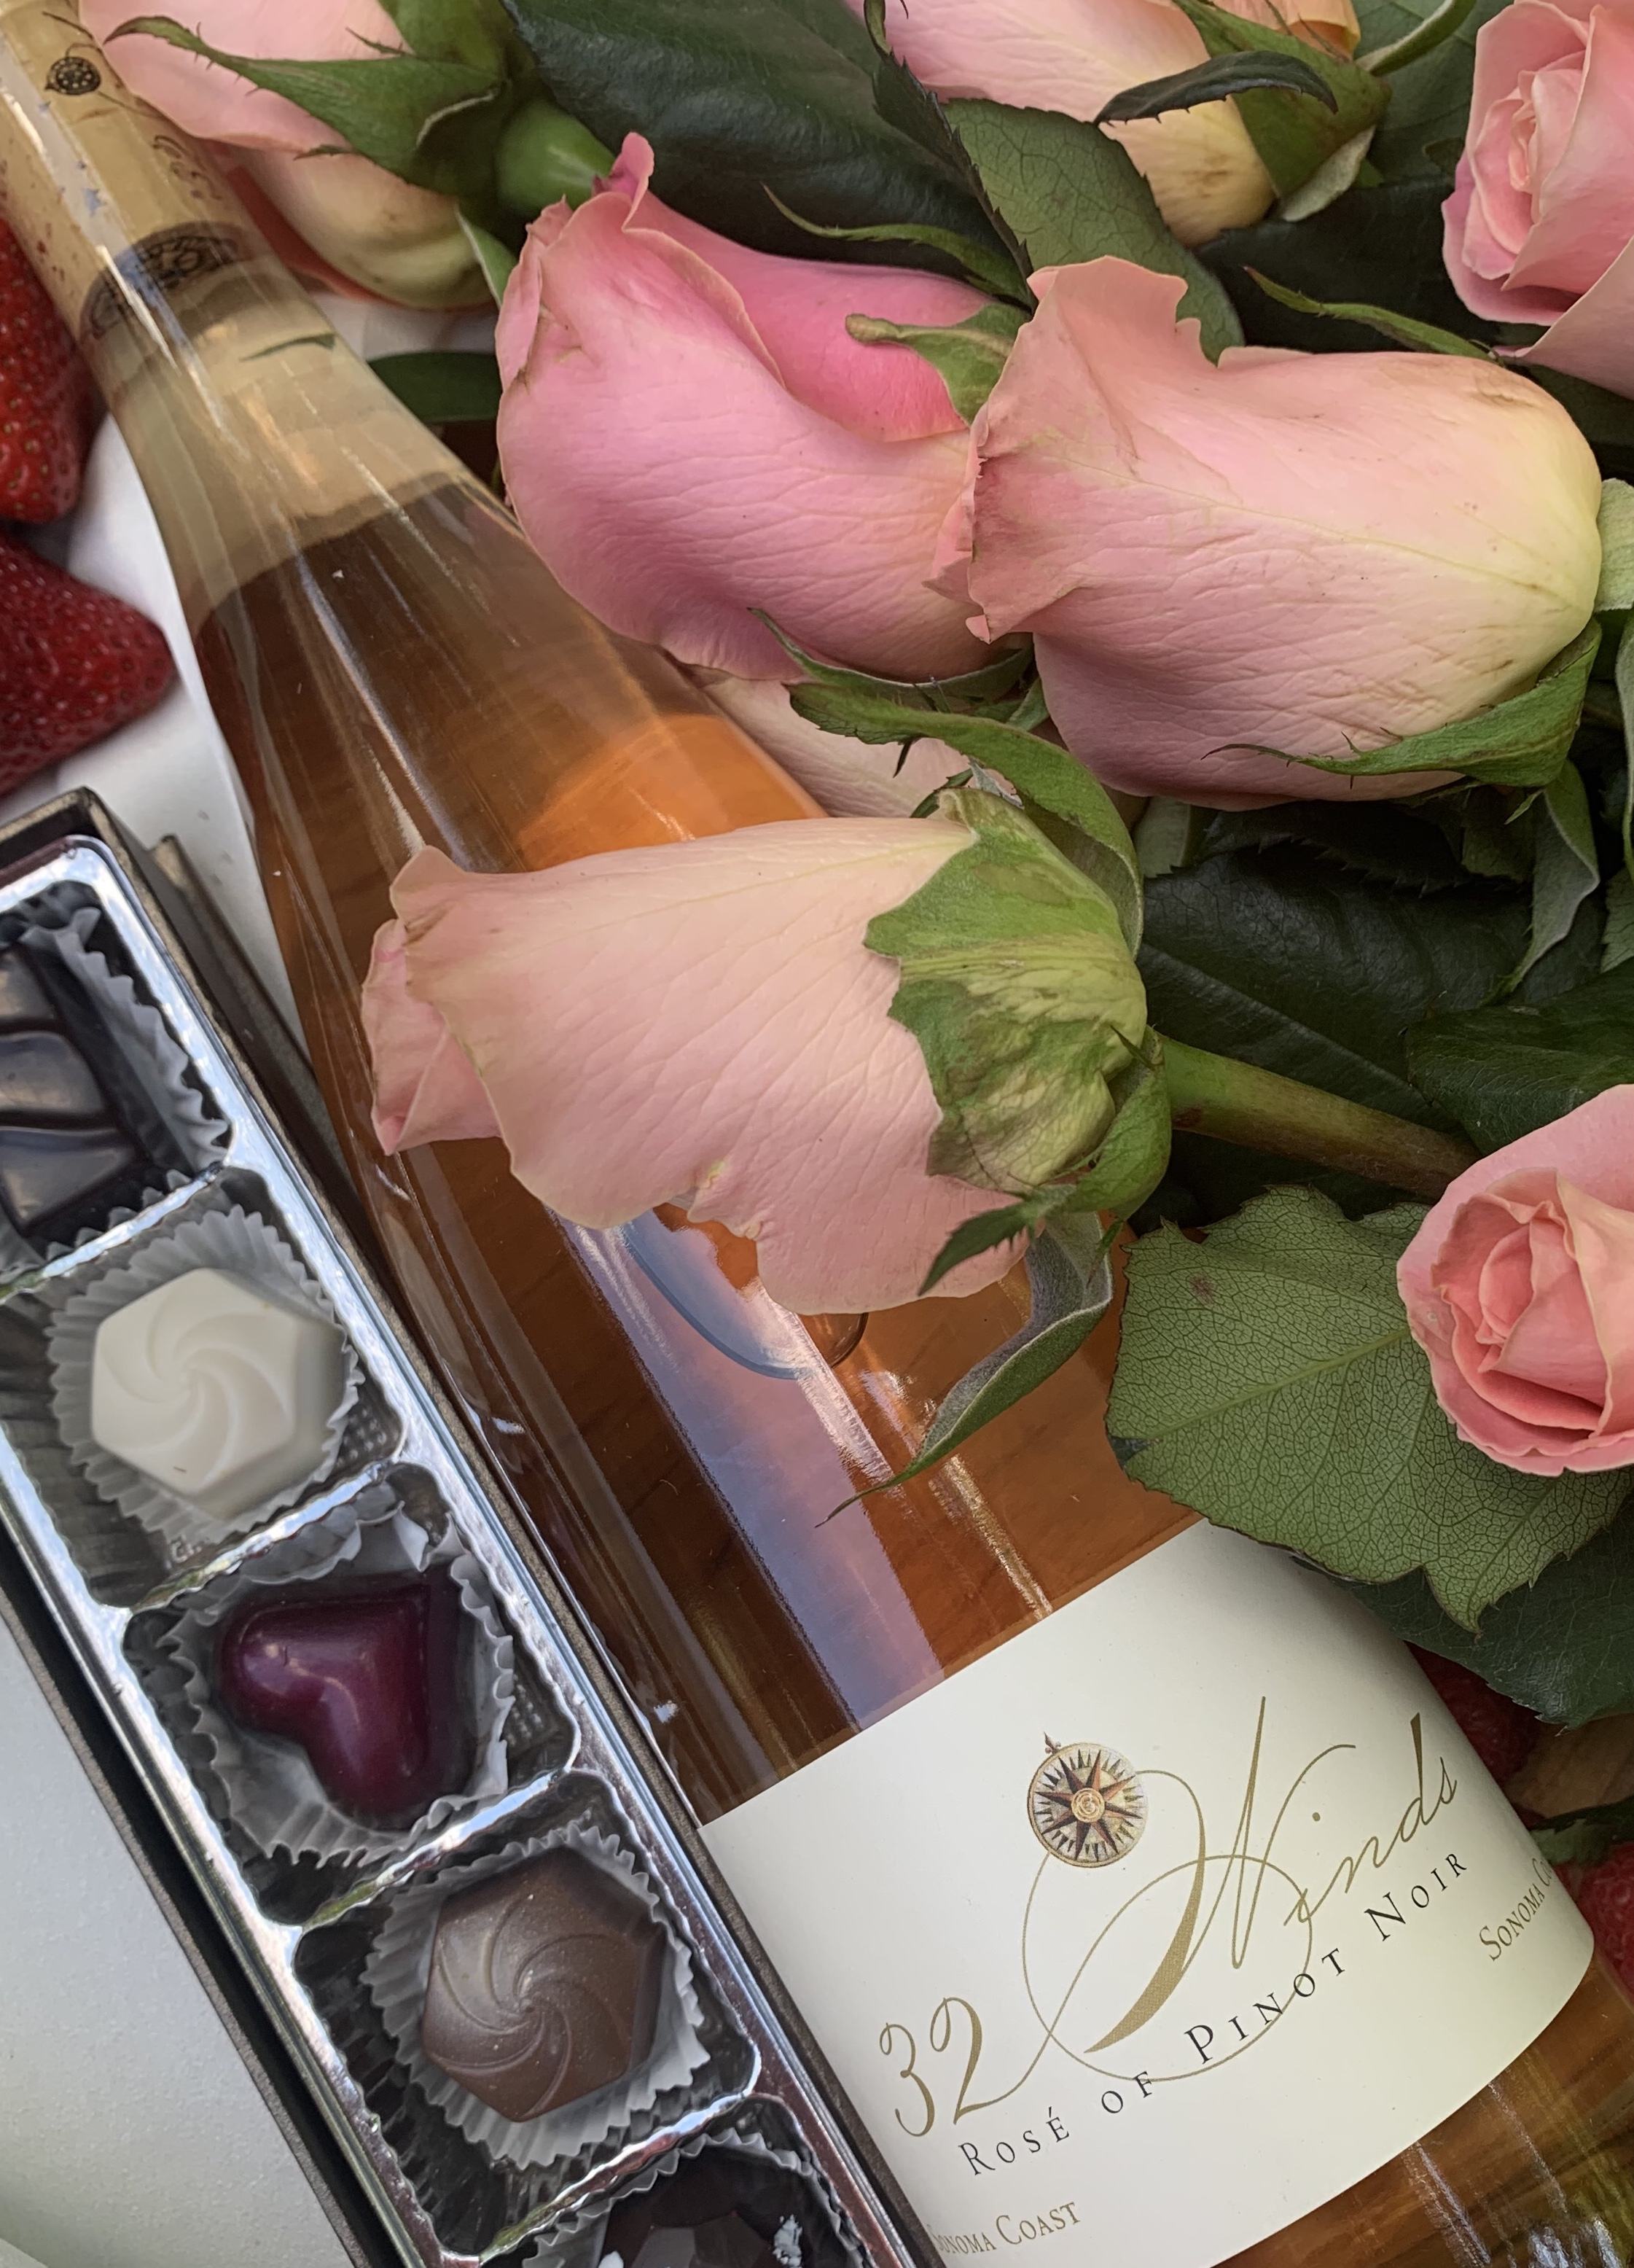 * Gift Set - 2 bottles Rose and Glacier Chocolates